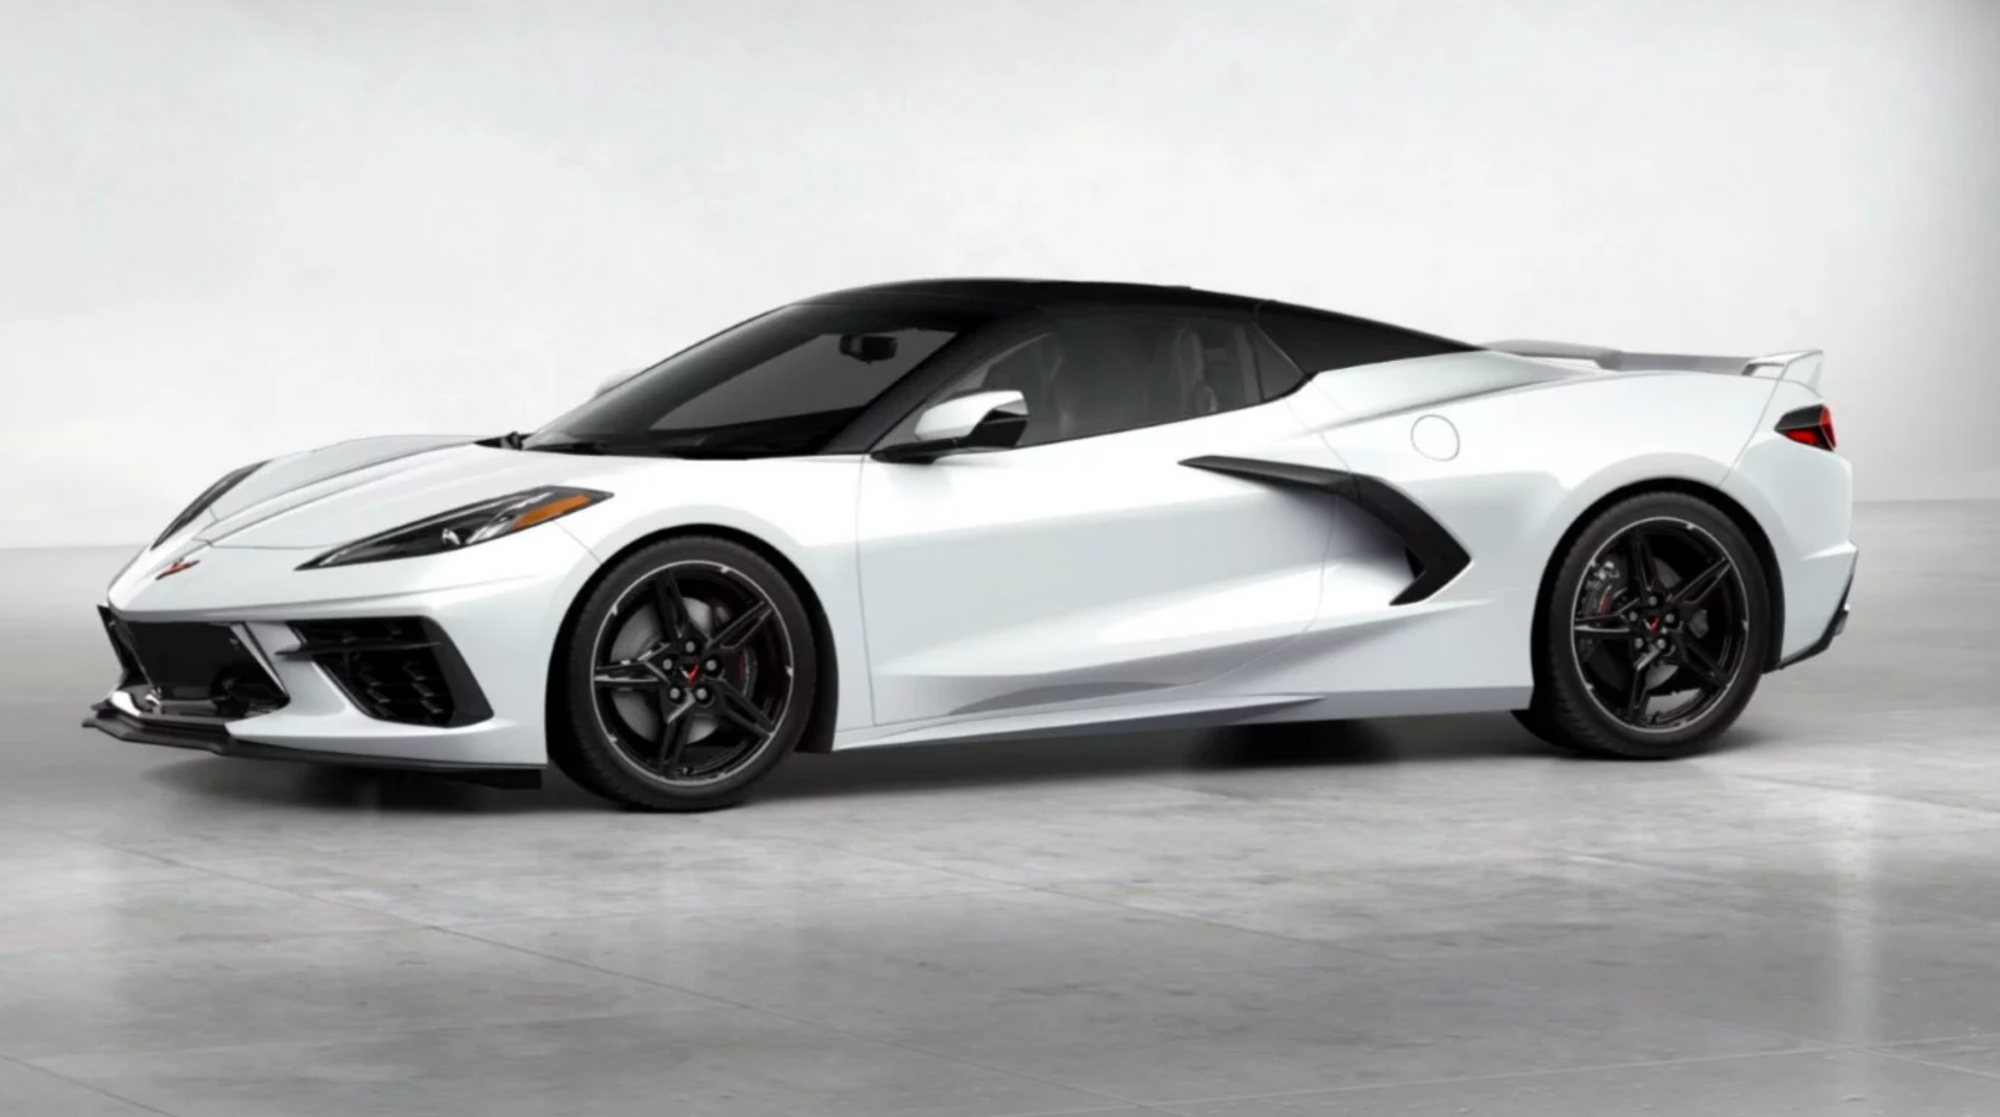 Enter The Code Win At Checkout And You Could Be Bringing This Brand New Corvette Home In 2021 Corvette Stingray For Sale Corvette Stingray Corvette